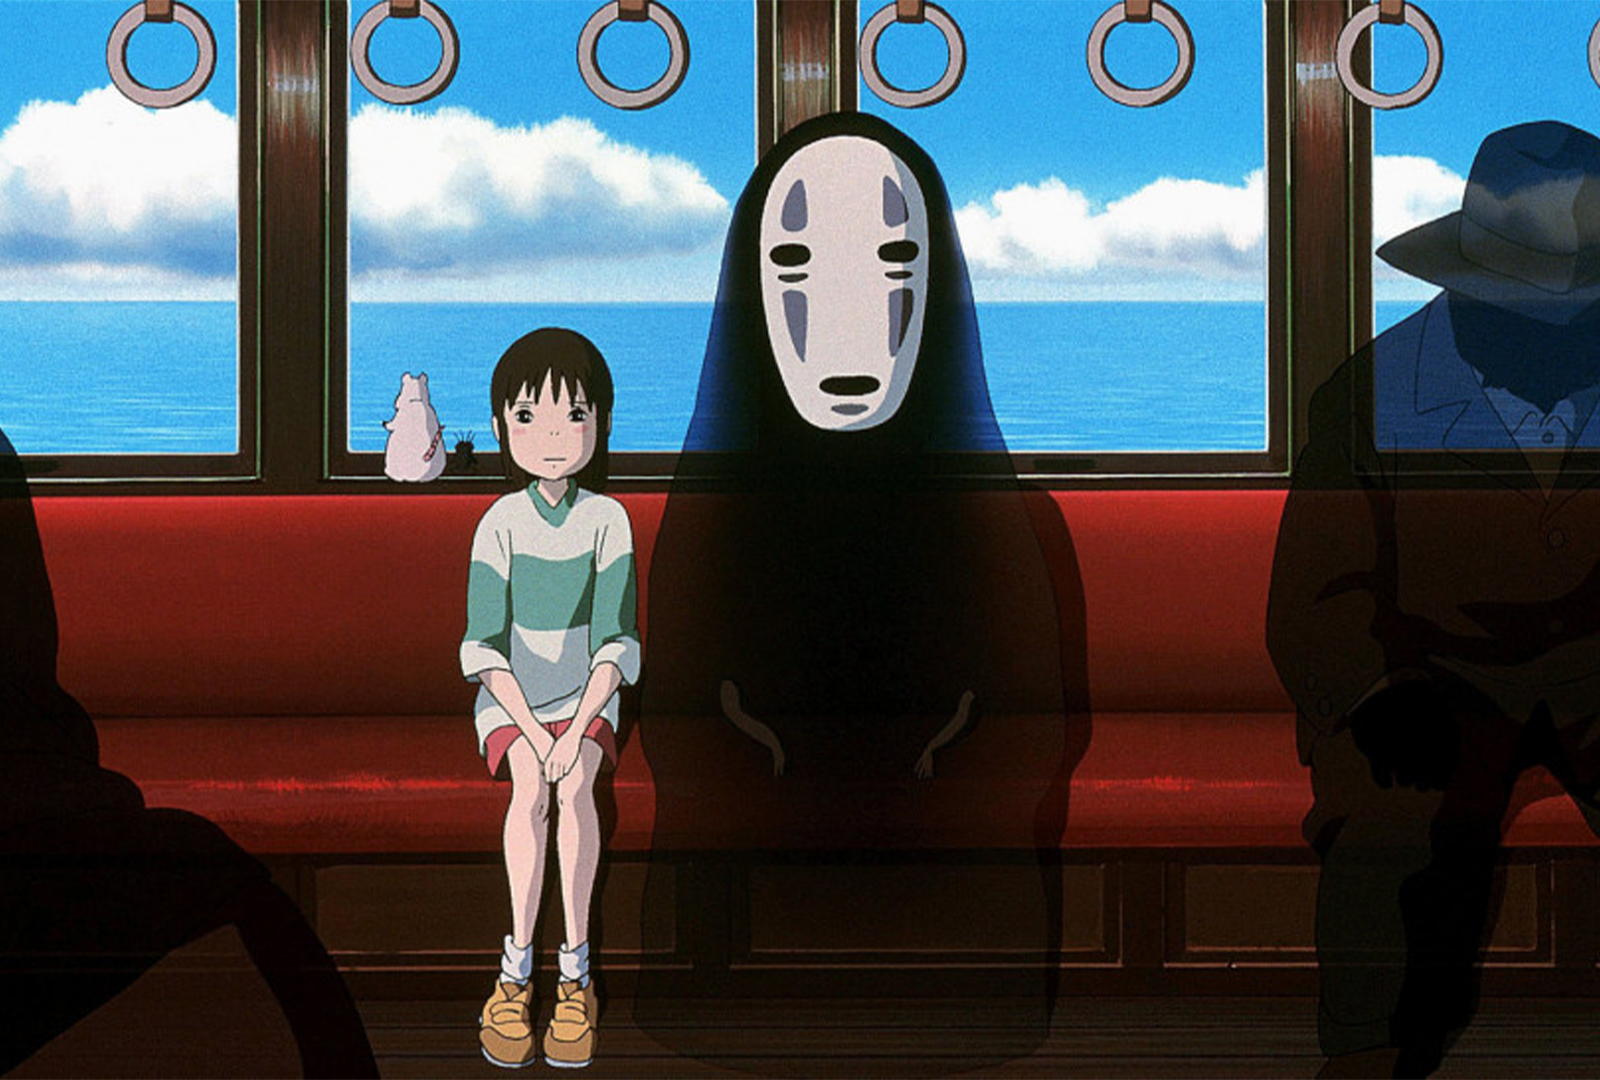 Studio Ghibli S Spirited Away And Howl S Moving Castle Soundtracks Are Coming To Vinyl For The First Time